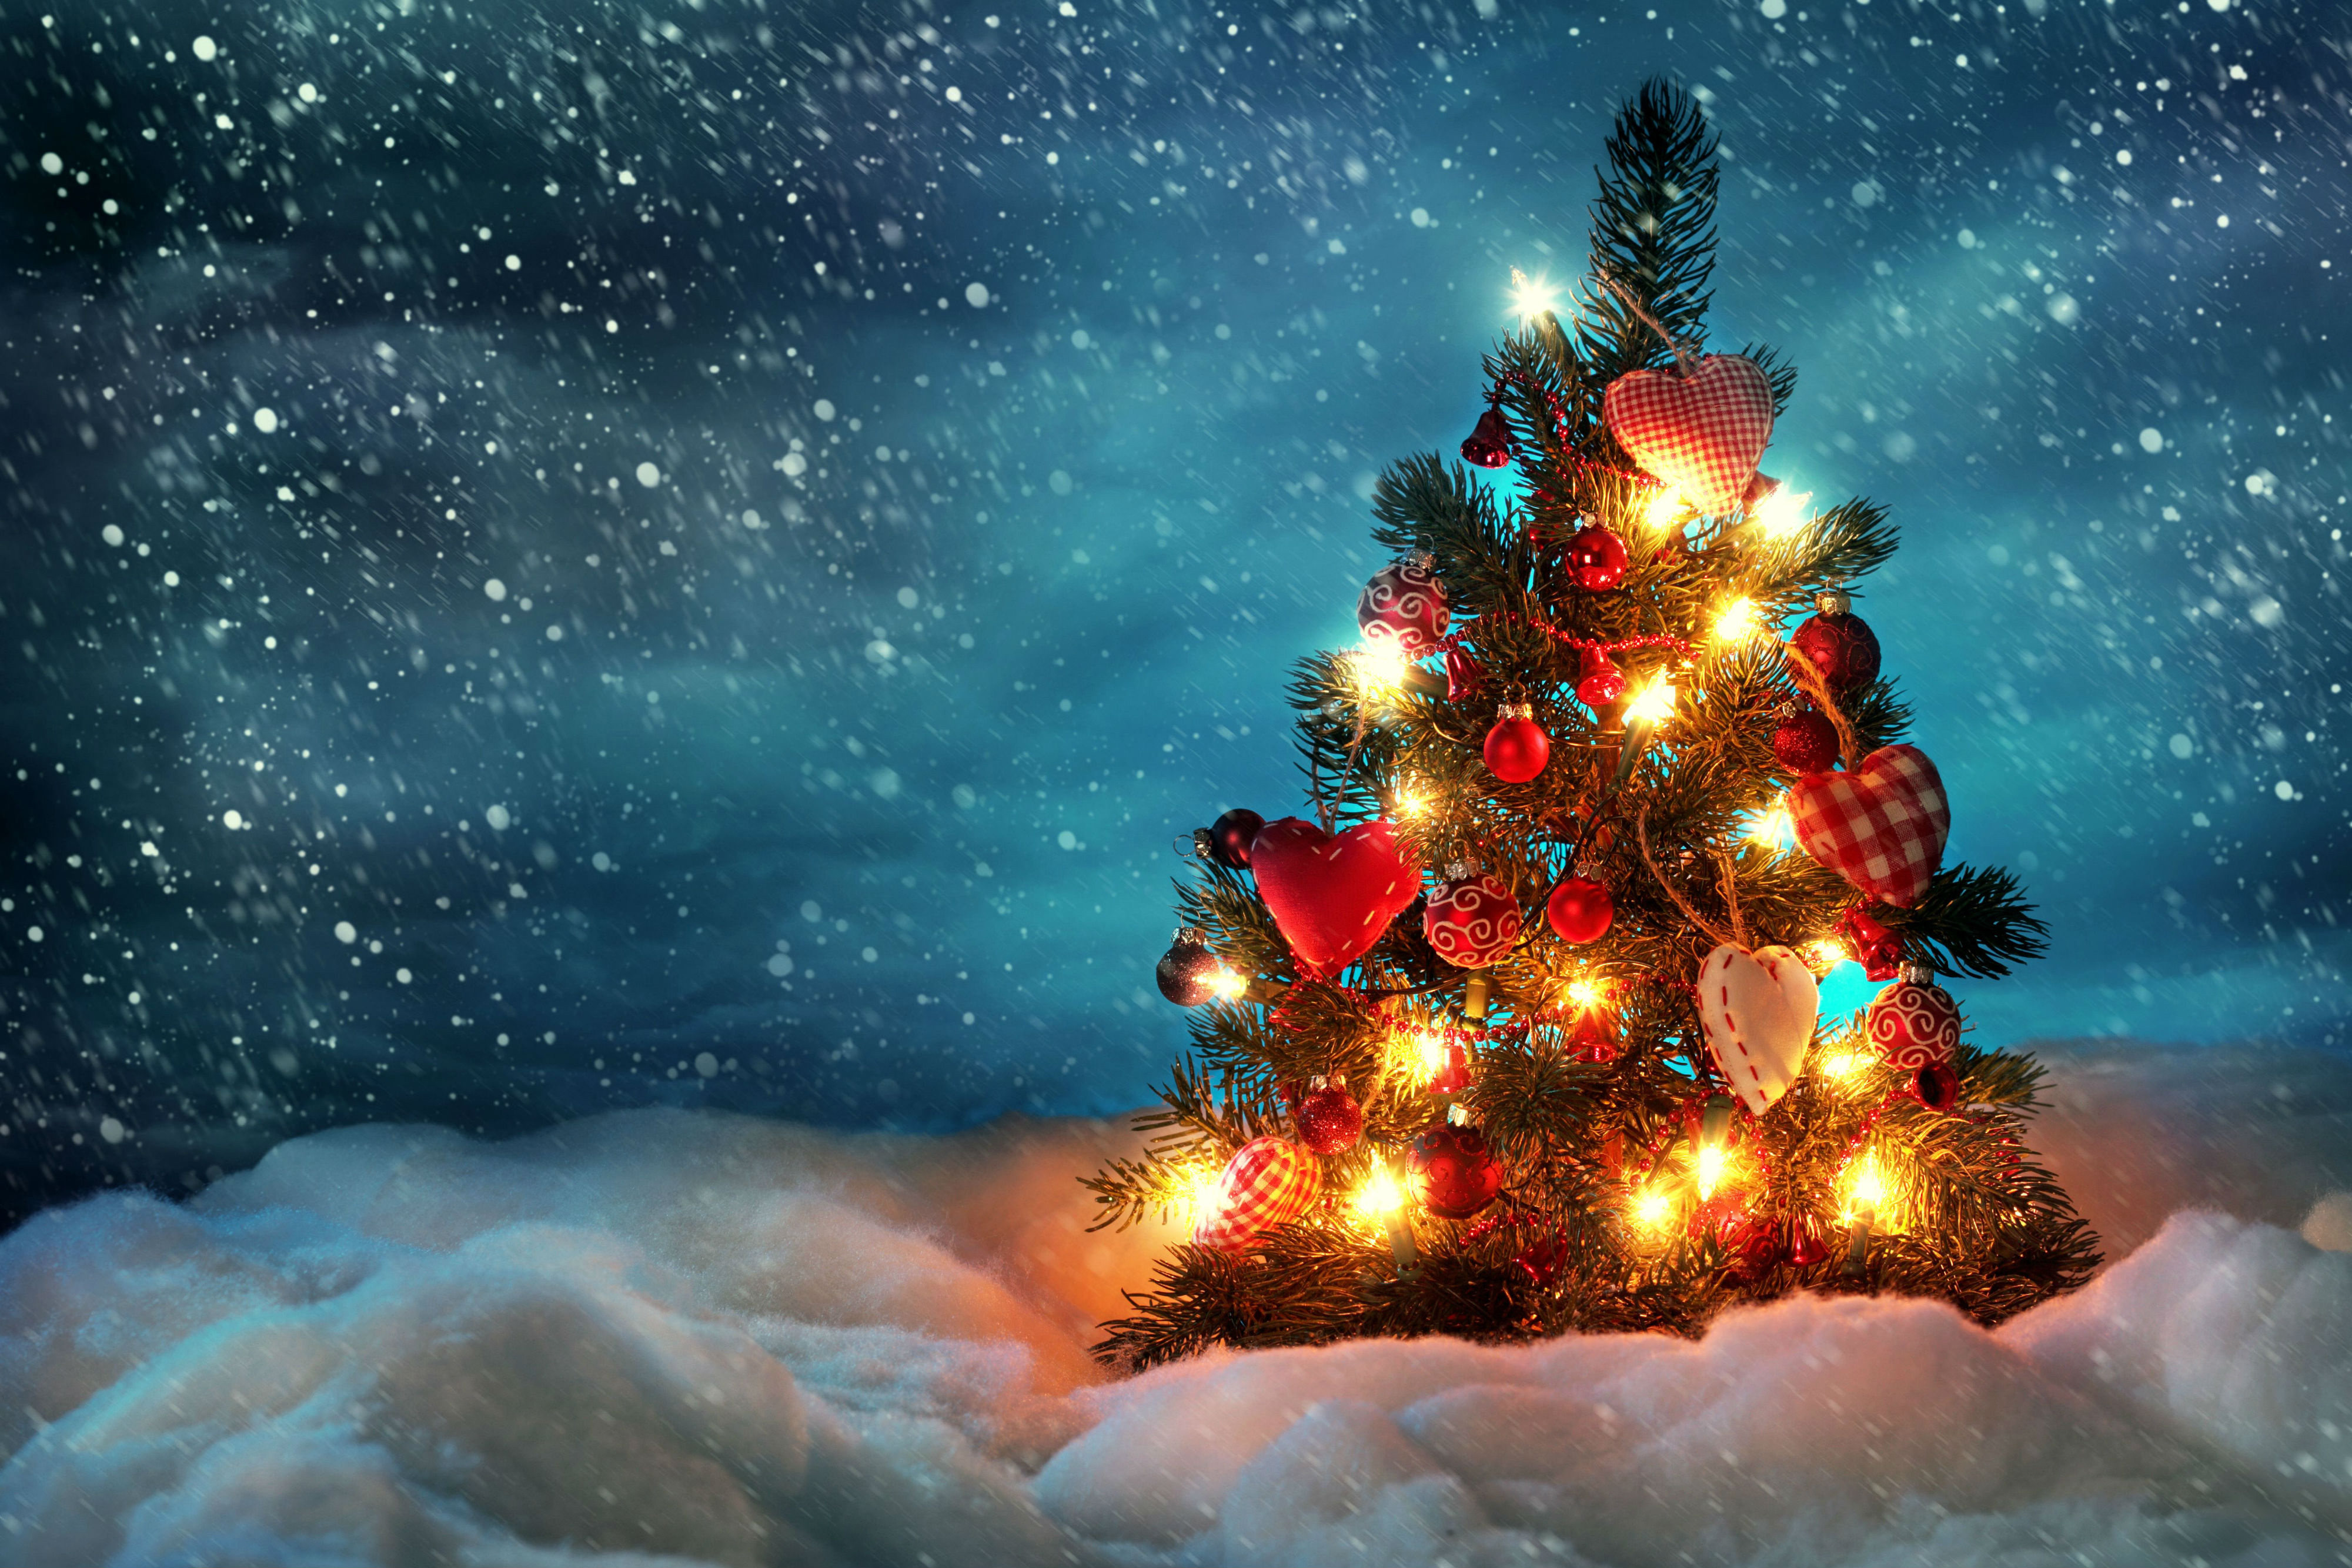 26 christmas wallpapers - HDwallpapers.net